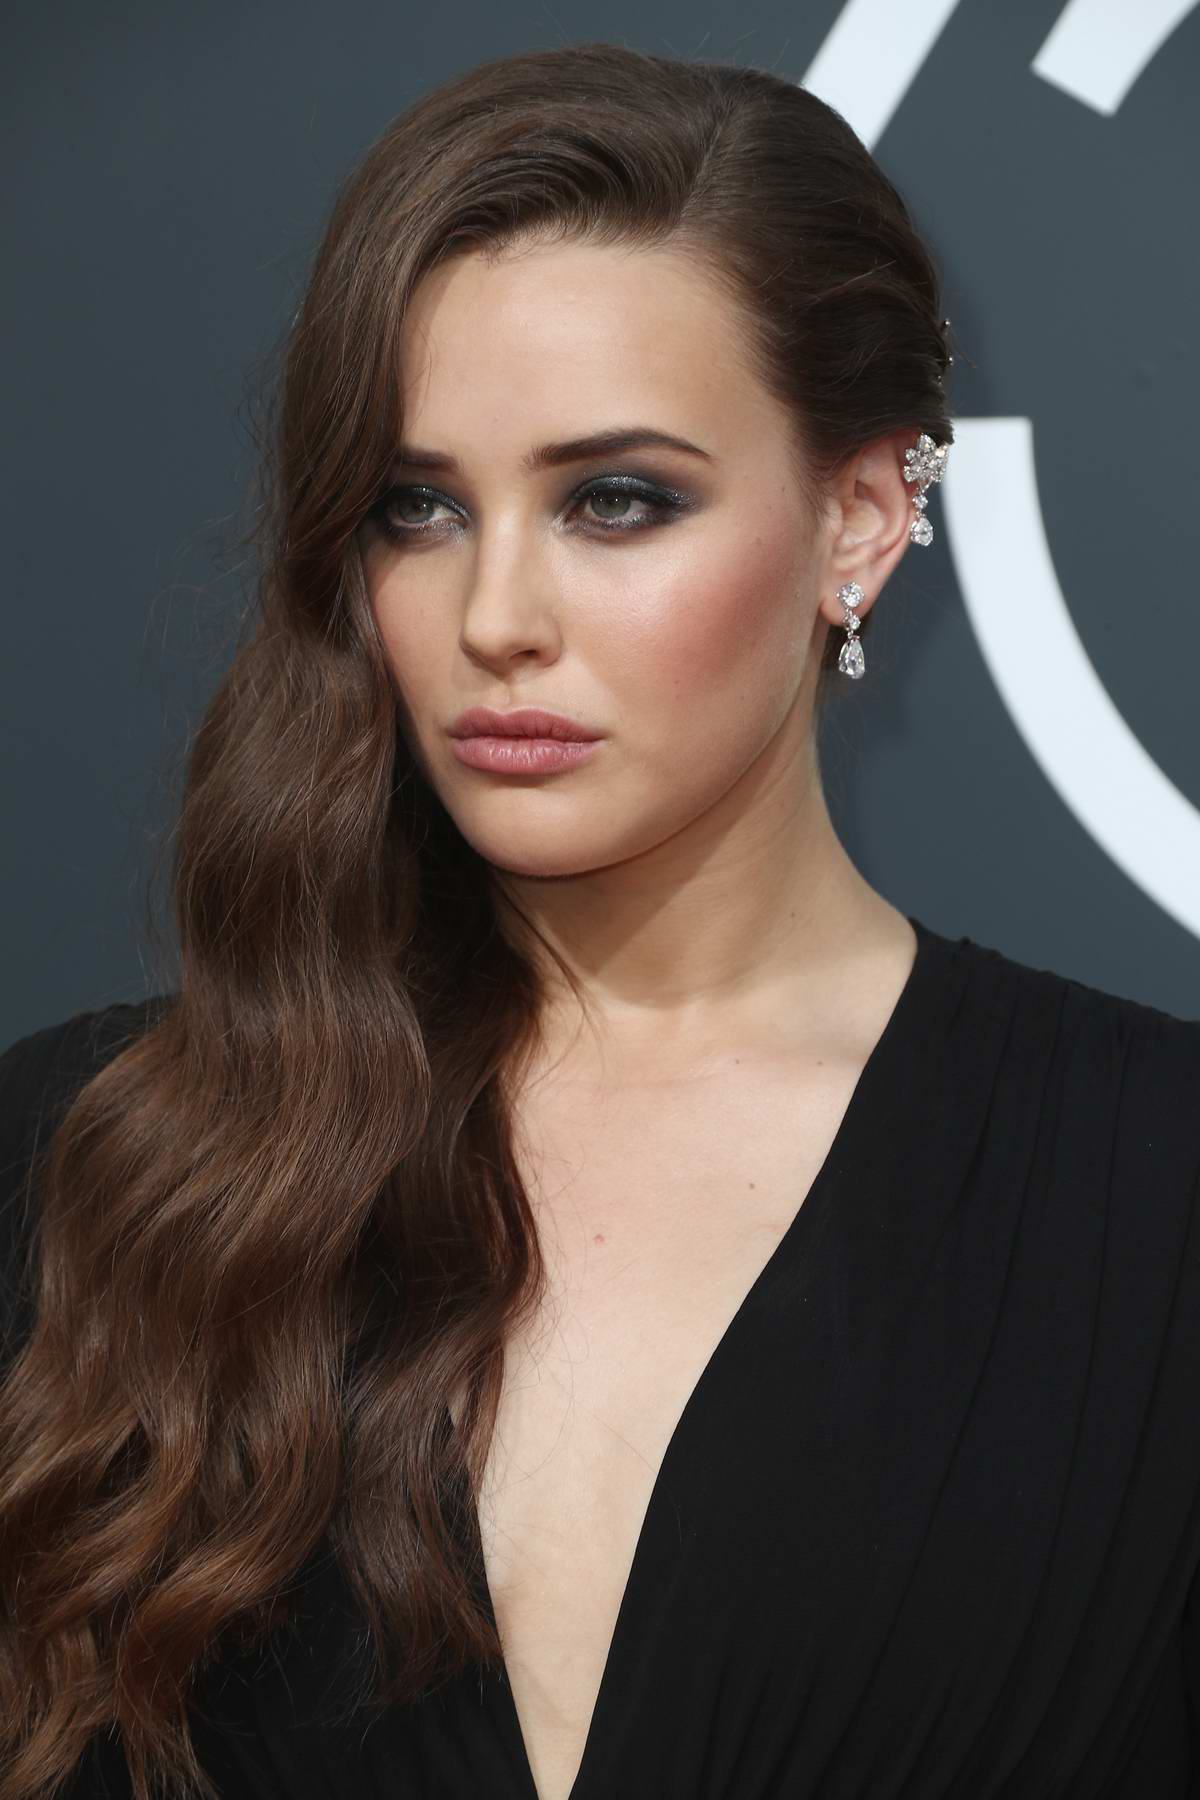 Katherine Langford attends the 75th Annual Golden Globe Awards in Beverly Hills, Los Angeles